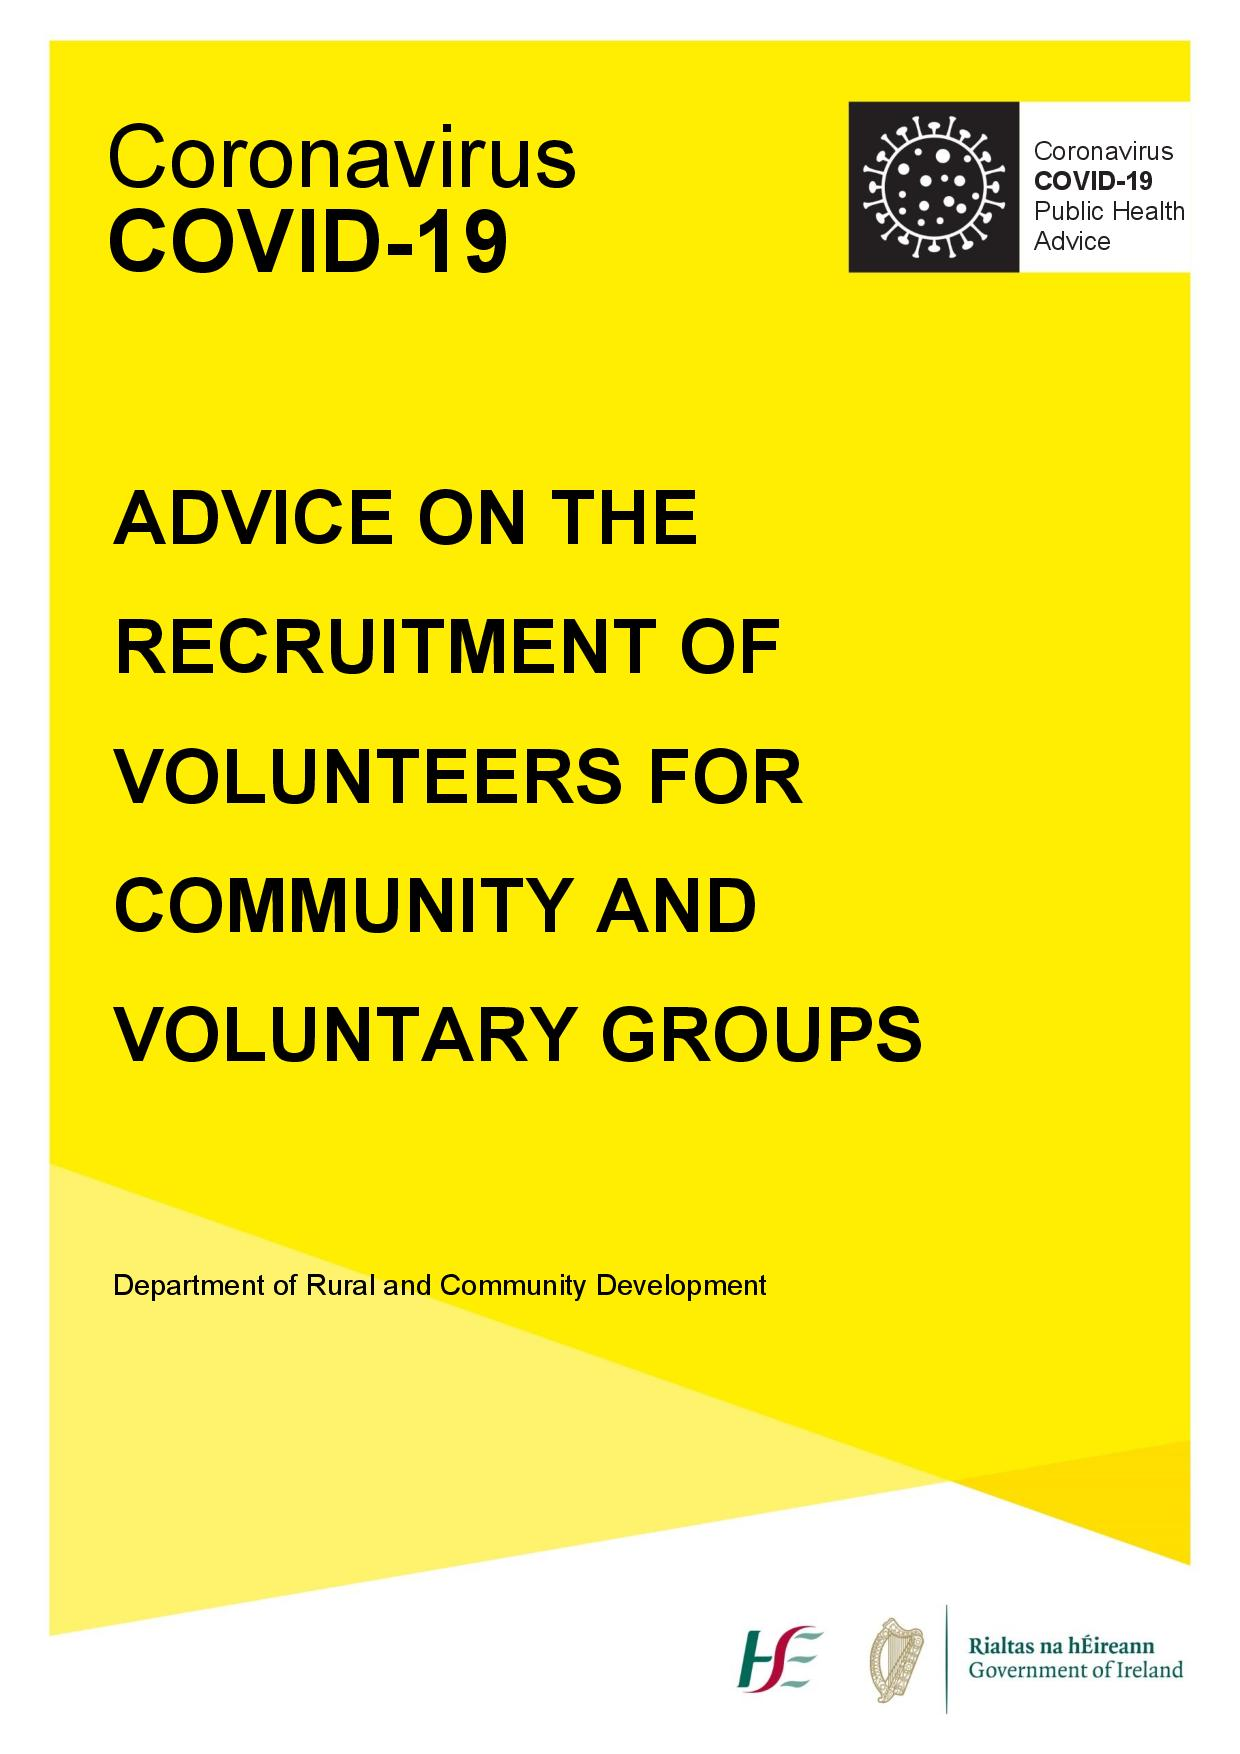 ADVICE ON THE RECRUITMENT OF VOLUNTEERS FOR COMMUNITY AND VOLUNTARY GROUPS-page-001